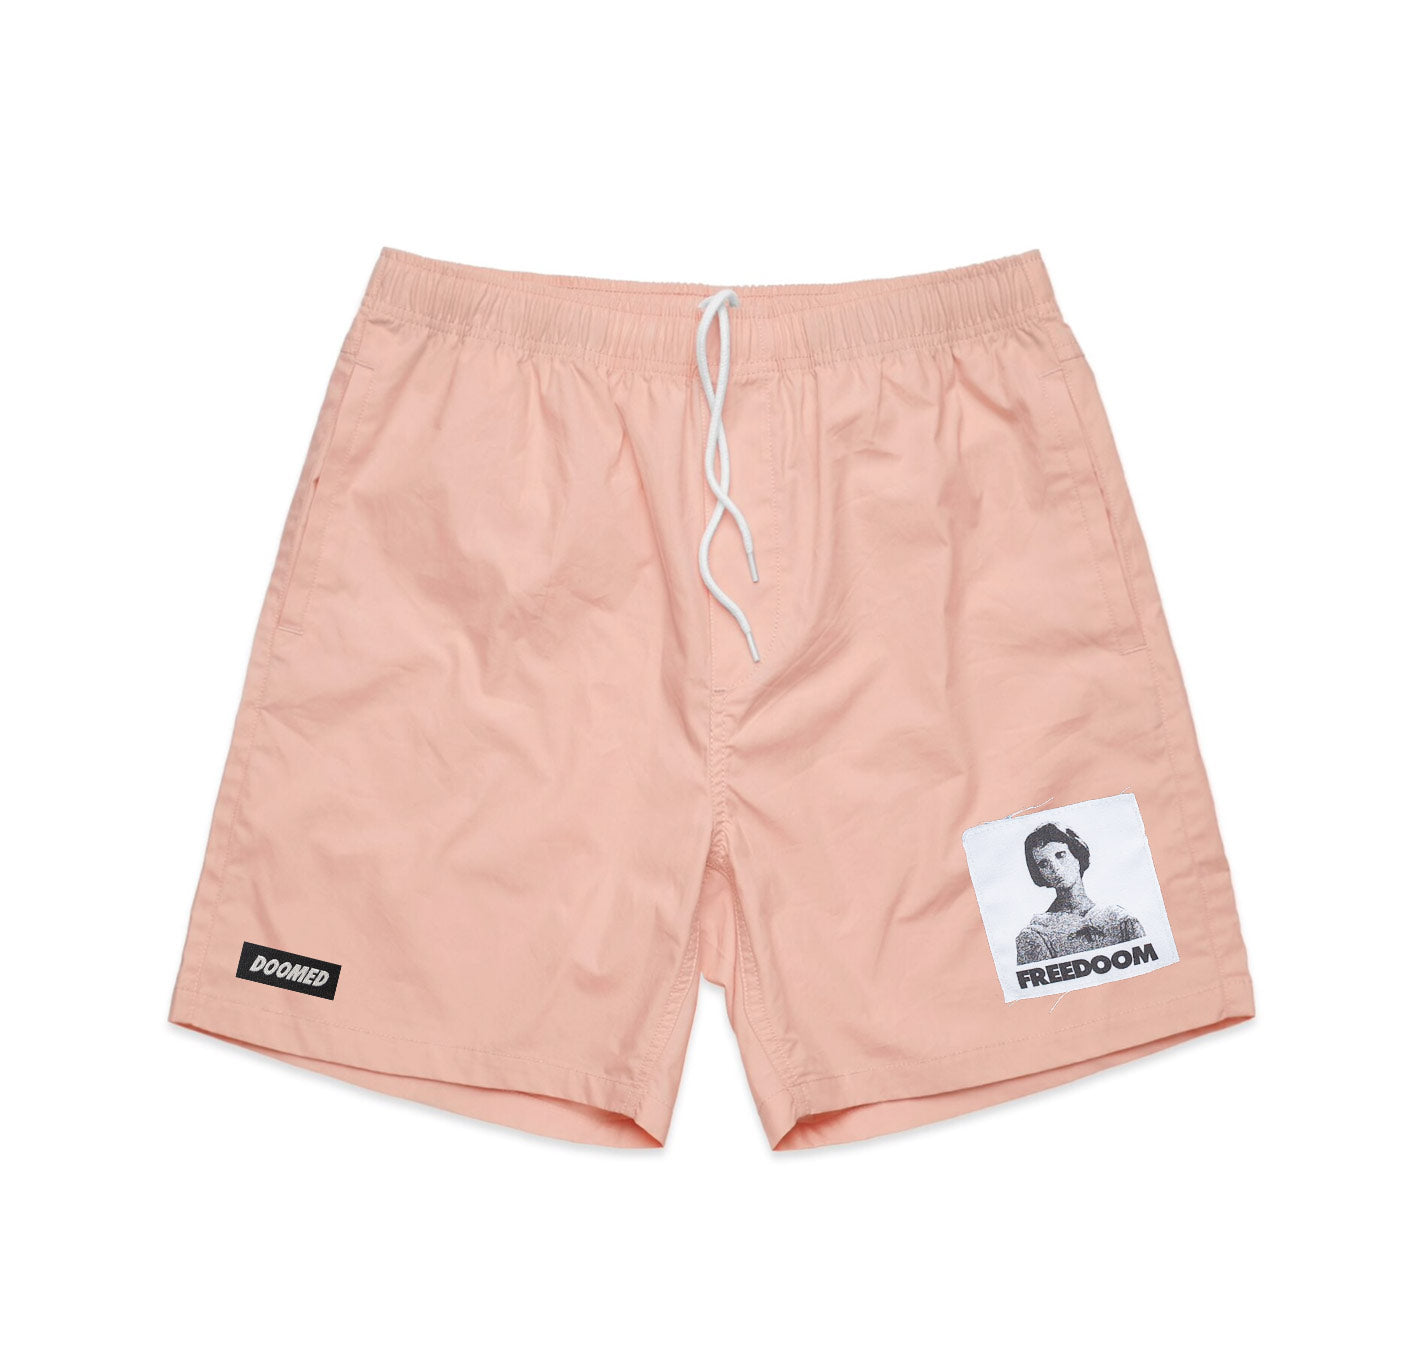 Freedom Shorts Pink